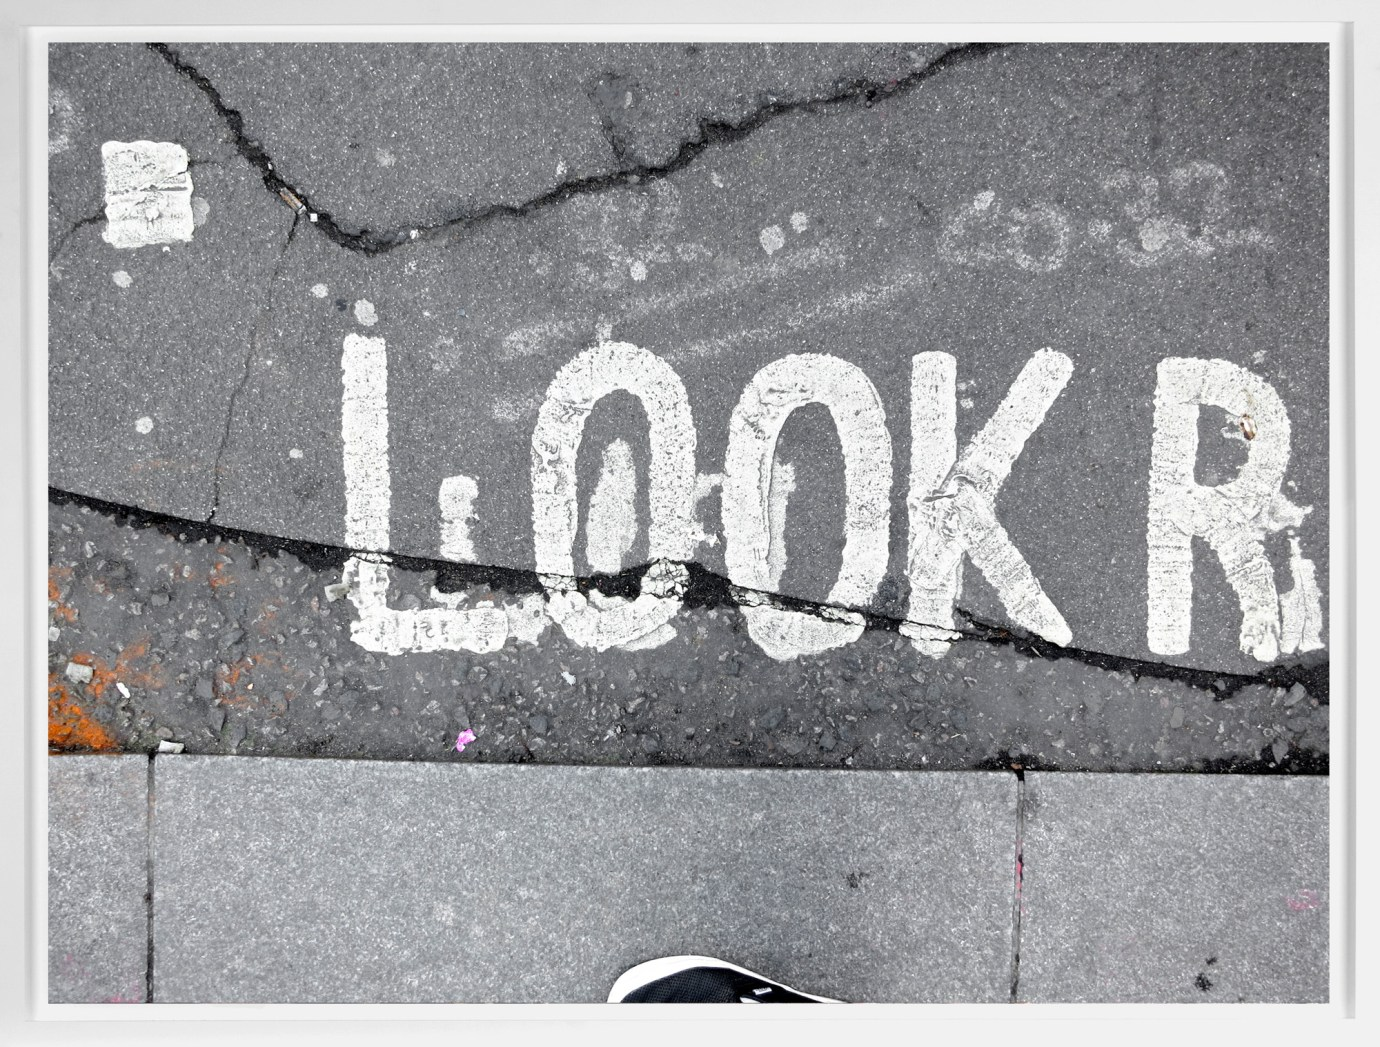 """A framed photograph of the word """"Look,"""" painted in the street near the sidewalk curb."""